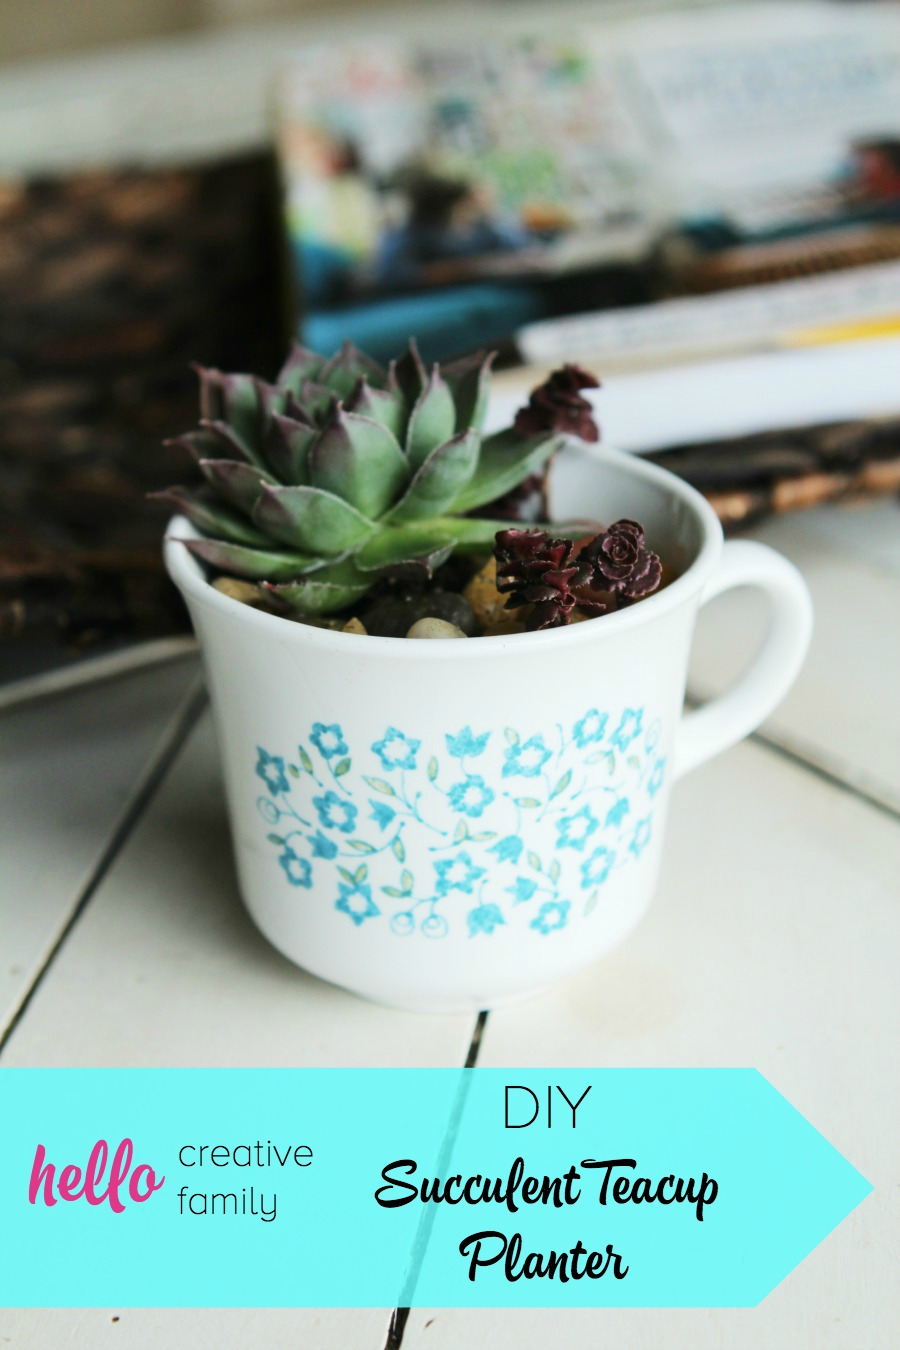 Have a black thumb? Turn your black thumb to green with succulents! Seriously! These things are so easy to grow. Low maintenance plants that look pretty? Bonus! Check out this adorable DIY Succulent Teacup Planter. They are the perfect little handmade gift idea for Mother's Day, teacher's gifts, neighbor gifts, Valentine's gifts, party/shower favors and thank you gifts! #Succulents #gardening #handmadegifts #thrifting